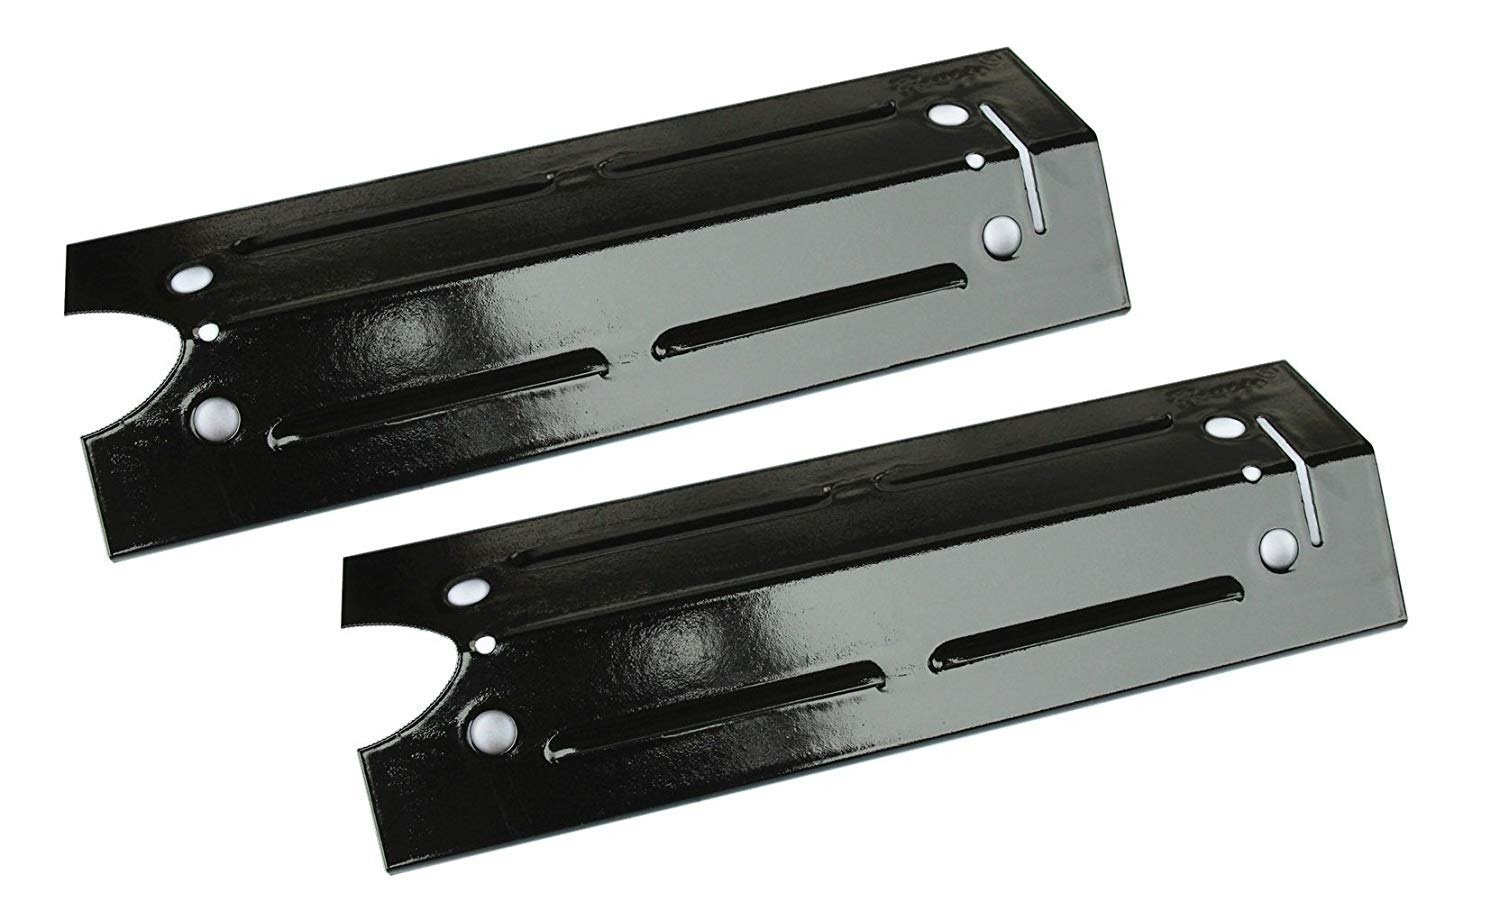 Porcelain Steel Heat Plate Burner Cover 2-Pack 15 x 4 13//16 Hongso PPI421 and Flavorizer Bar Replacement for Gas Grill Model Brinkmann 810-4220-S